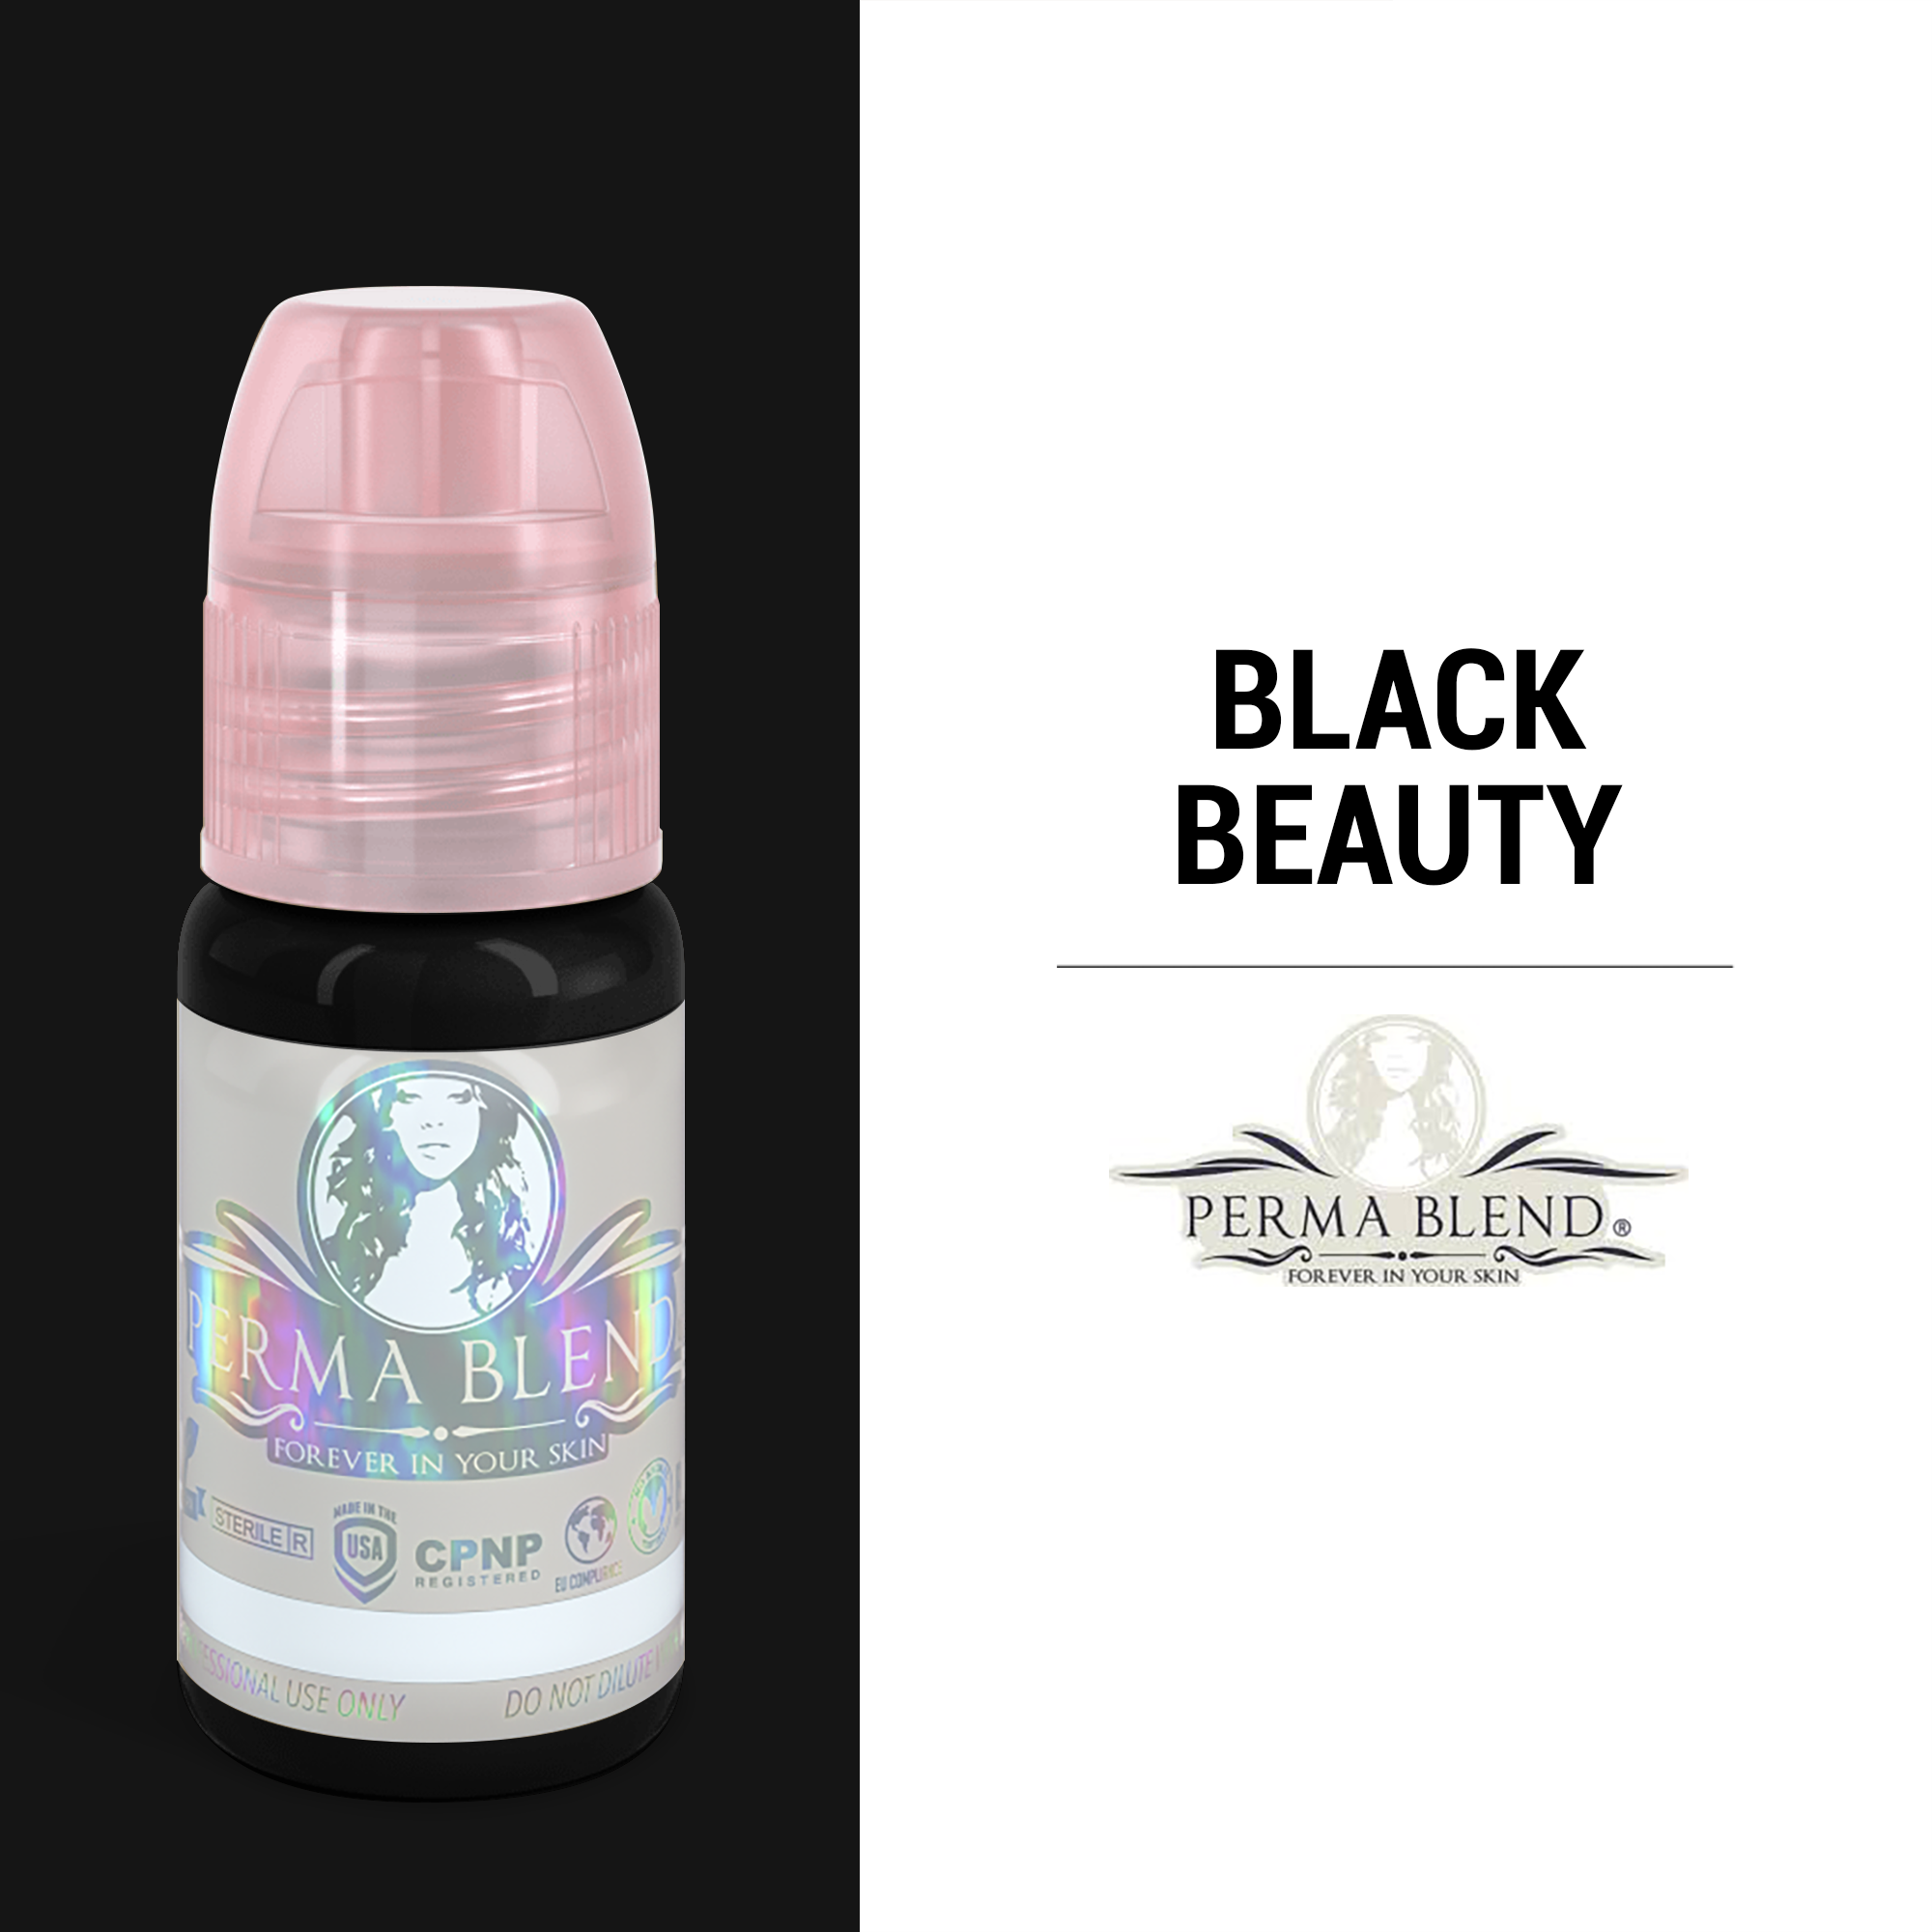 Perma Blend Black Beauty